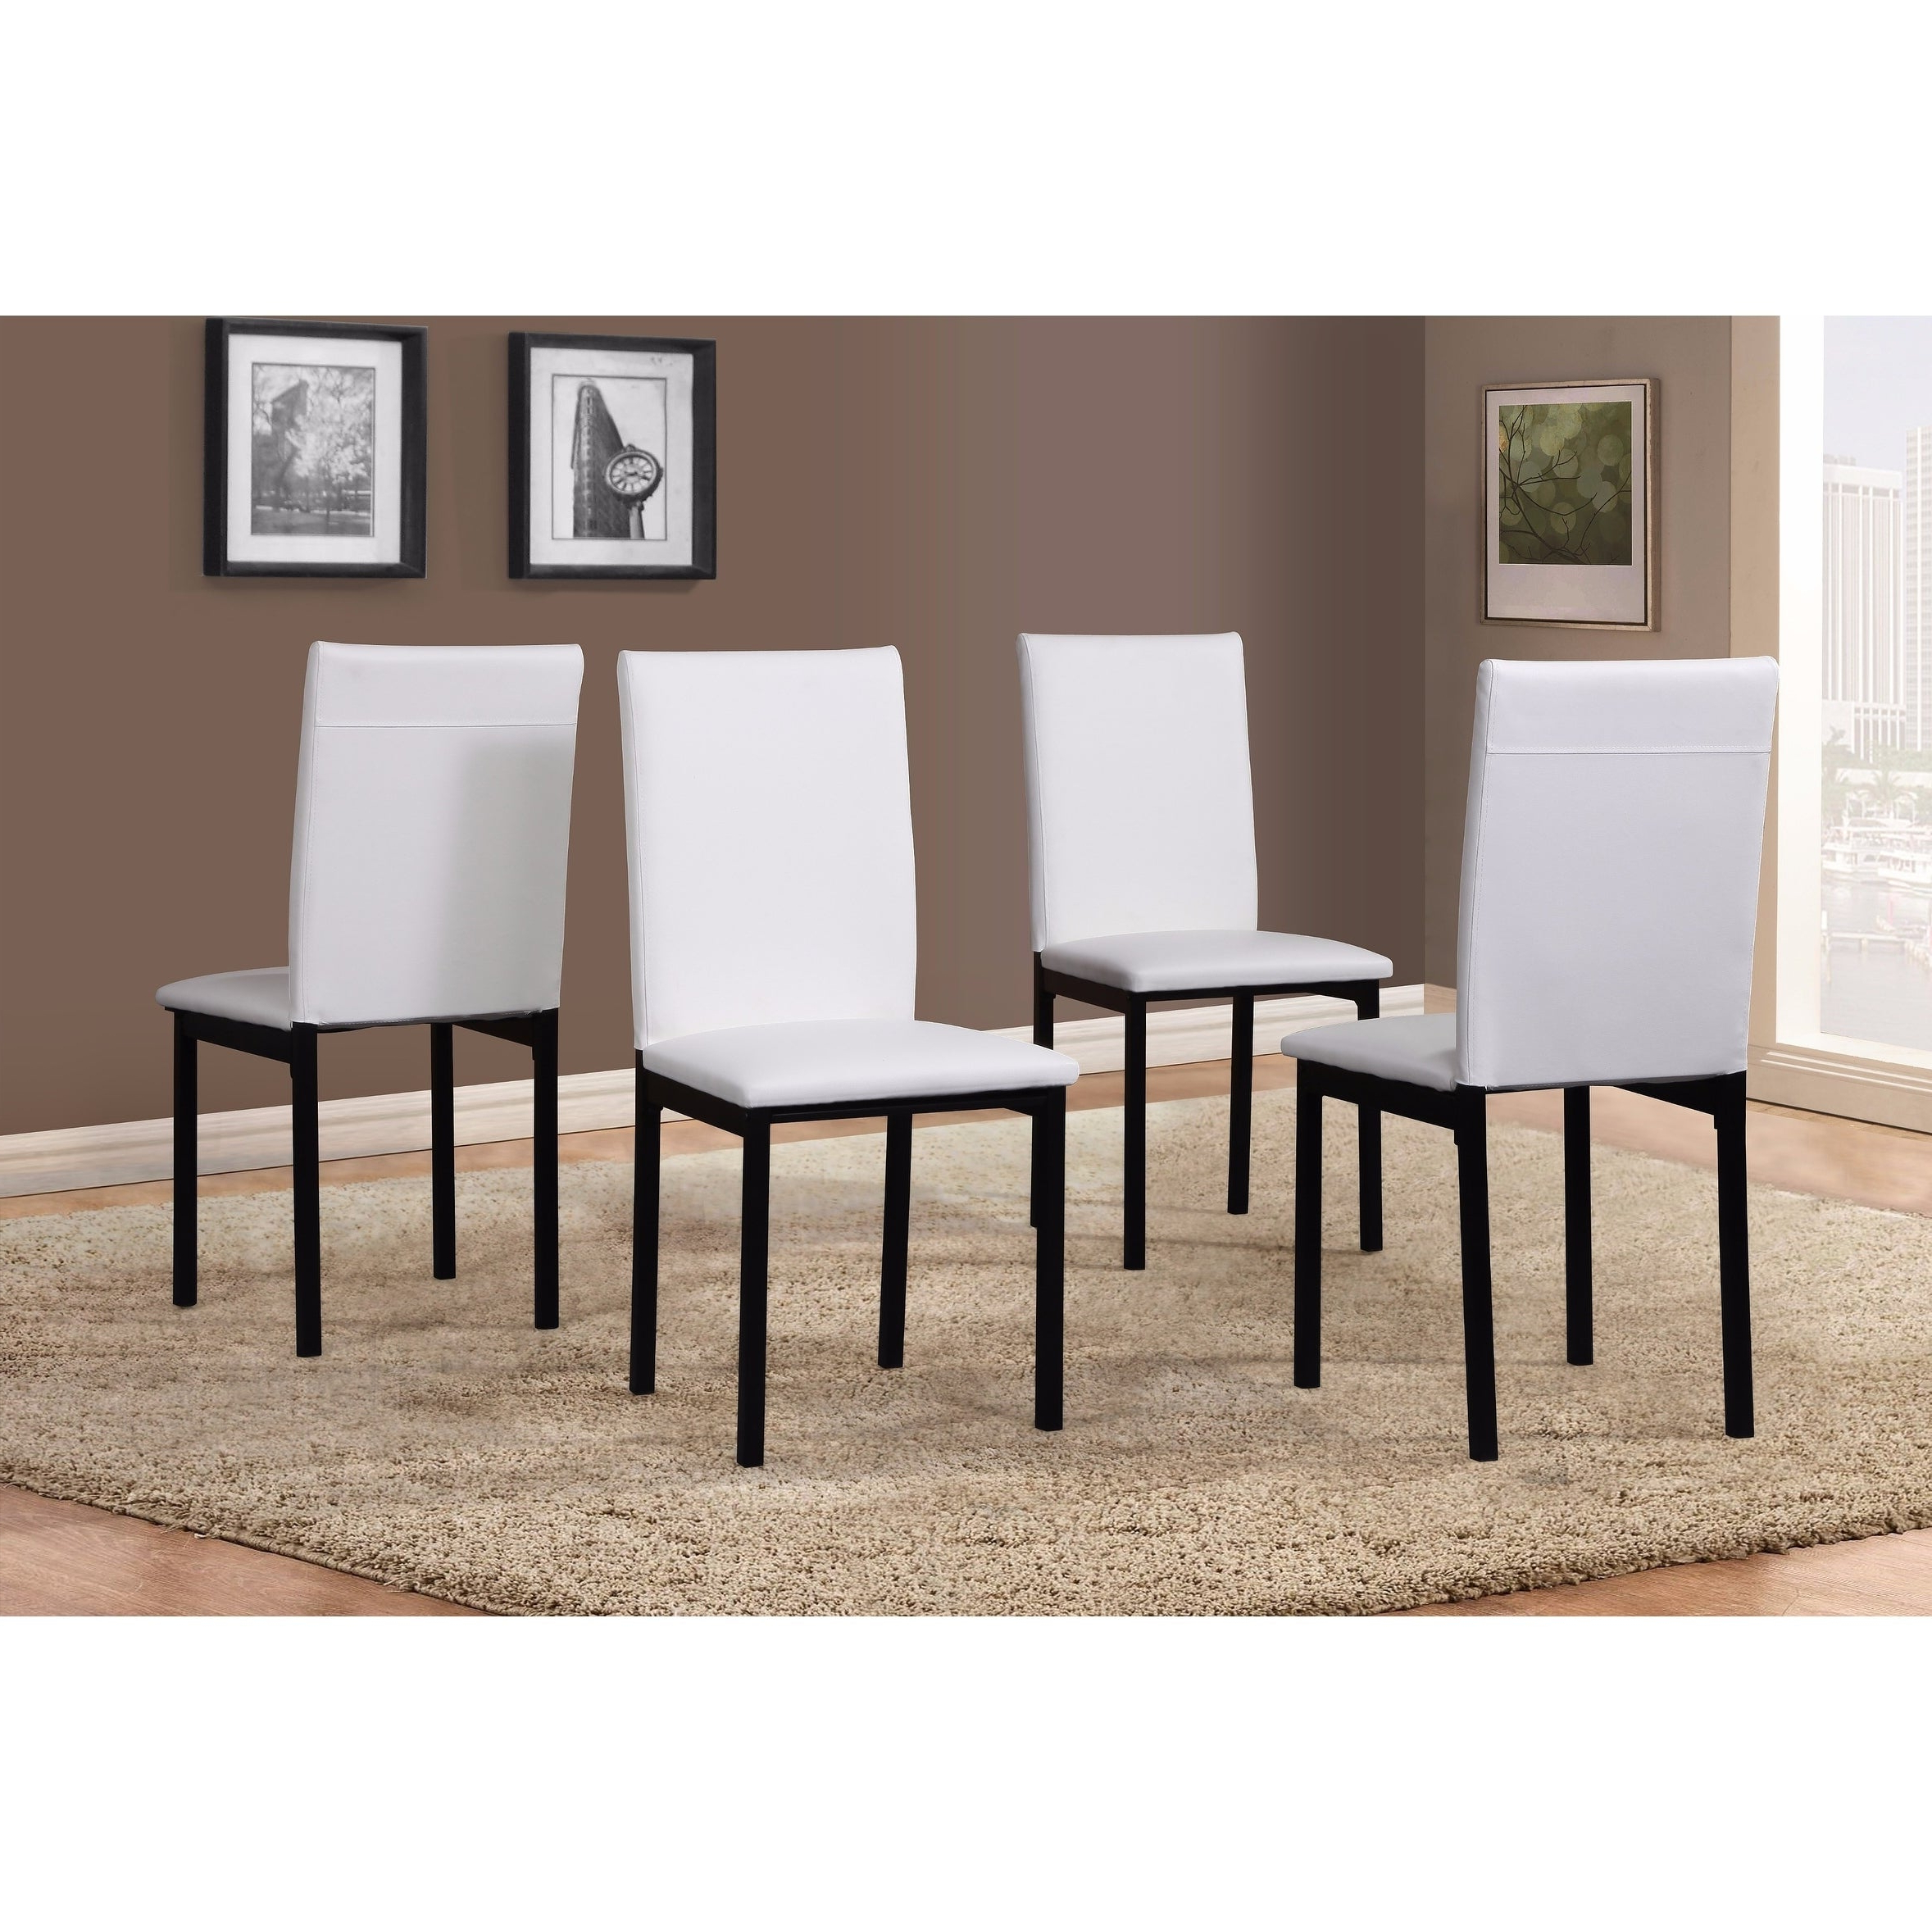 Noyes 5 Piece Dining Sets Intended For 2018 Noyes Faux Leather Seat Metal Frame Black Dining Chairs, Set Of  (View 11 of 20)